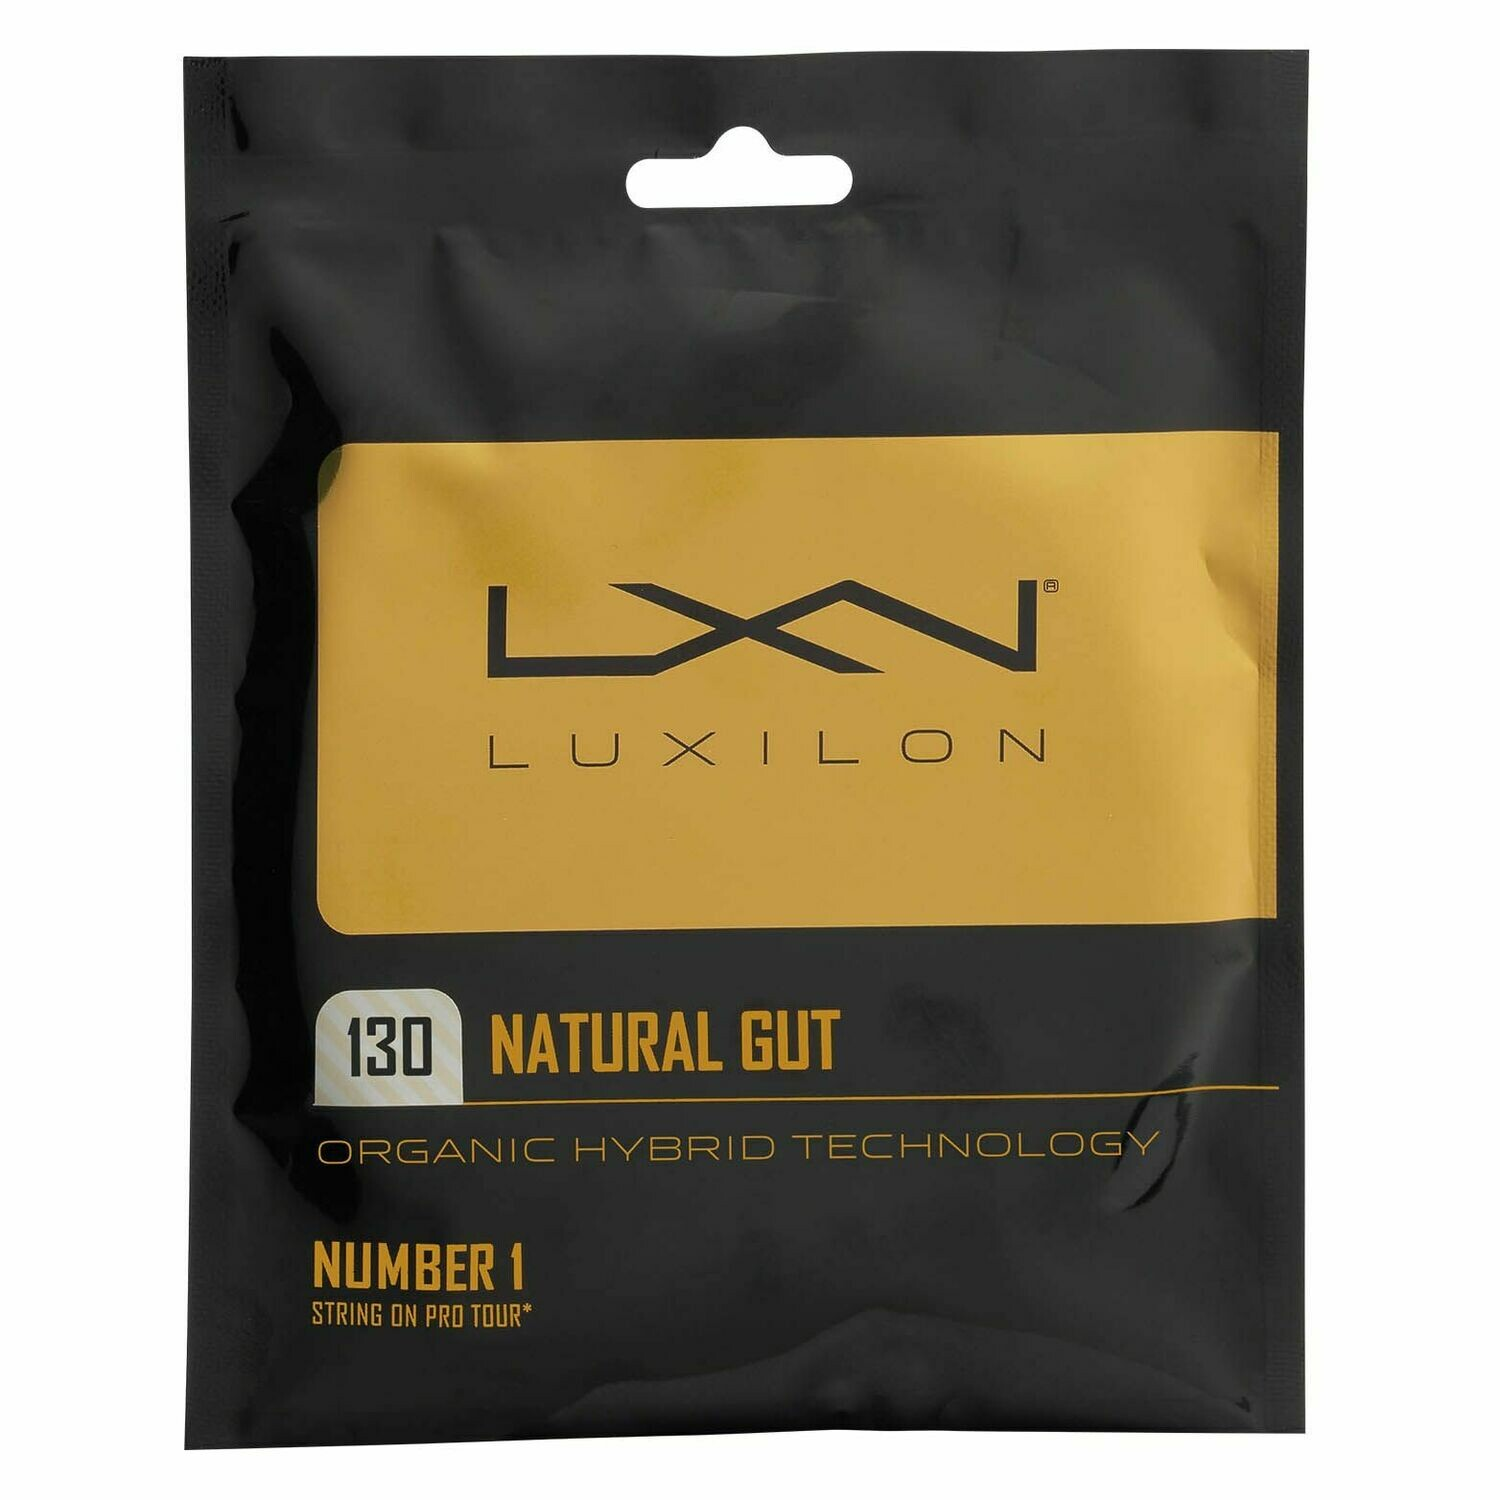 Luxilon Natural Gut 130 String Set